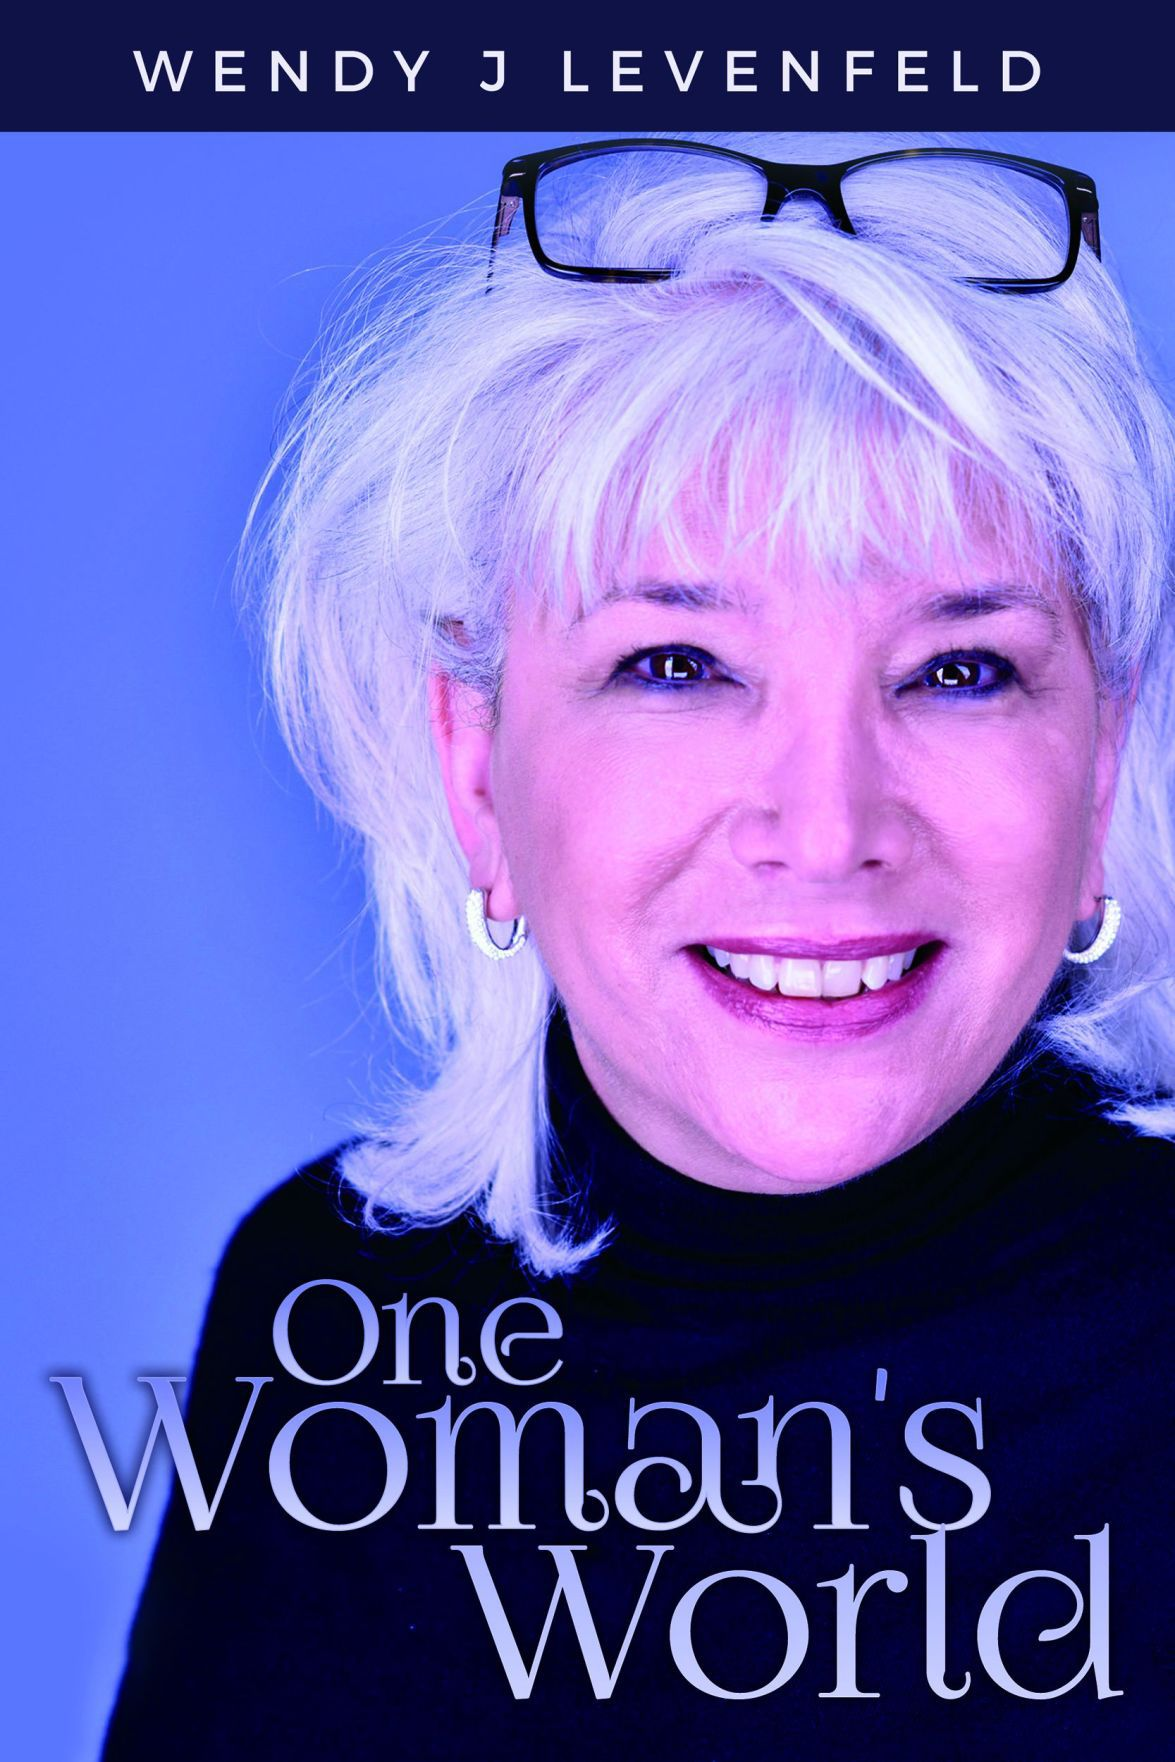 One Woman's World